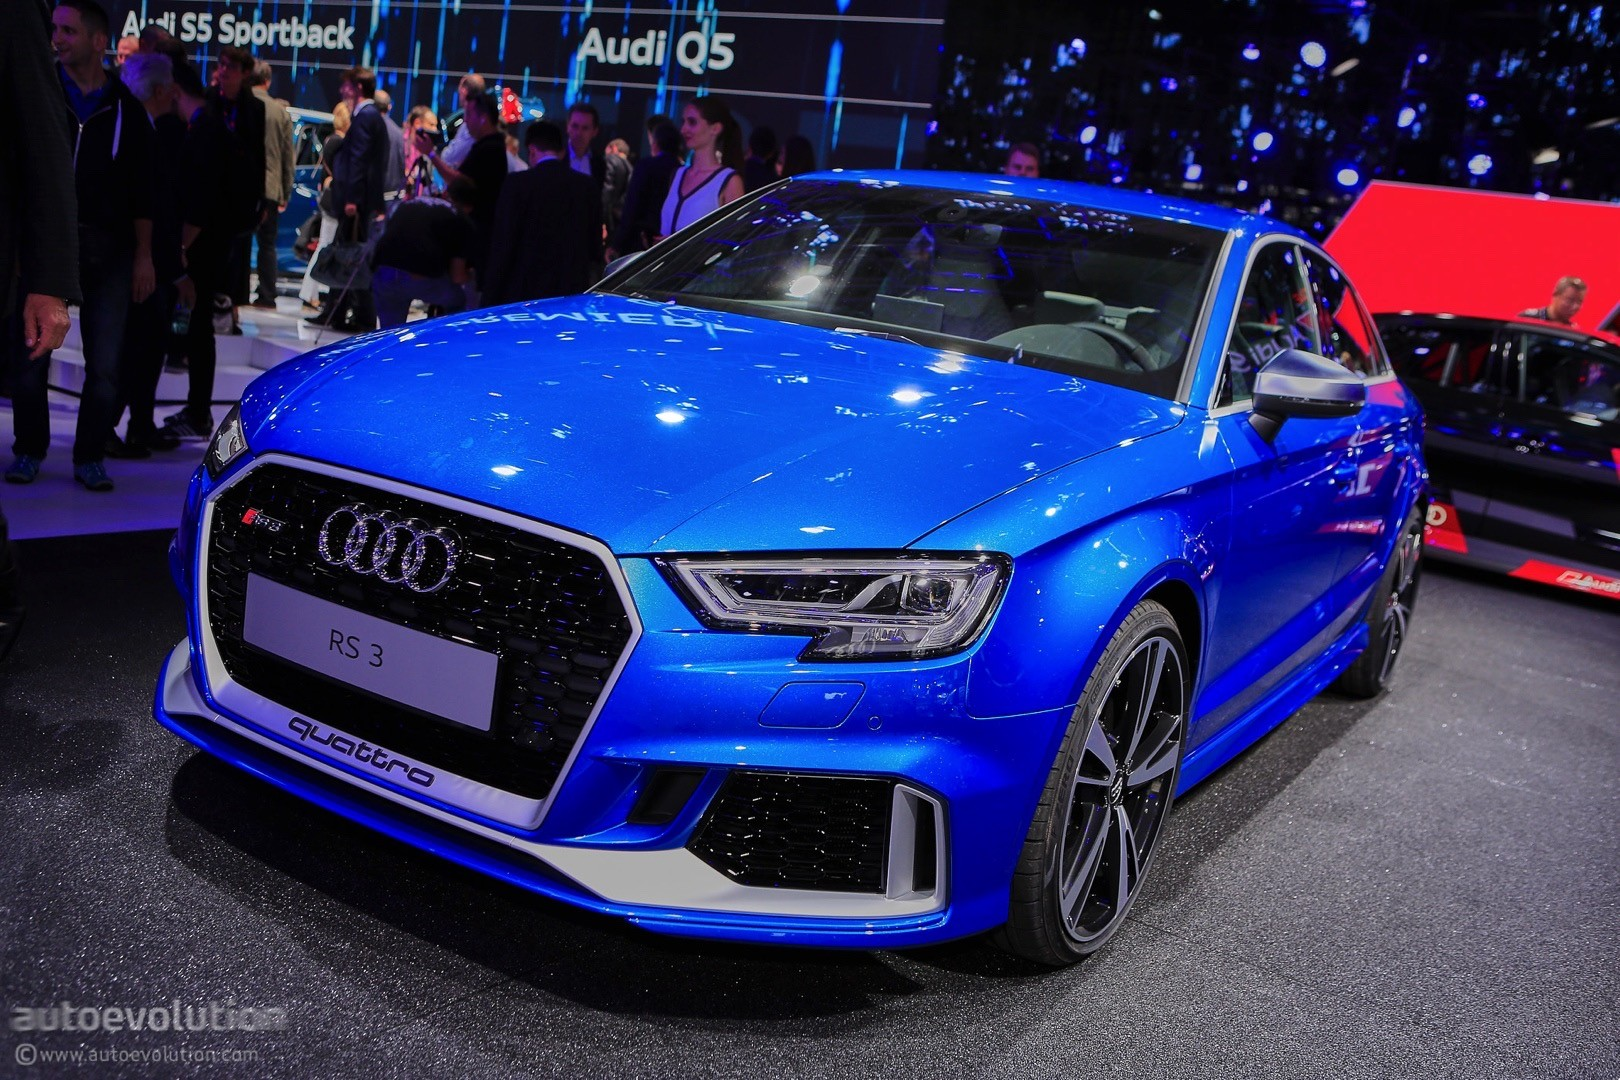 2018 audi rs3 sedan price leaked in canada should be around 54 000 in the us autoevolution. Black Bedroom Furniture Sets. Home Design Ideas